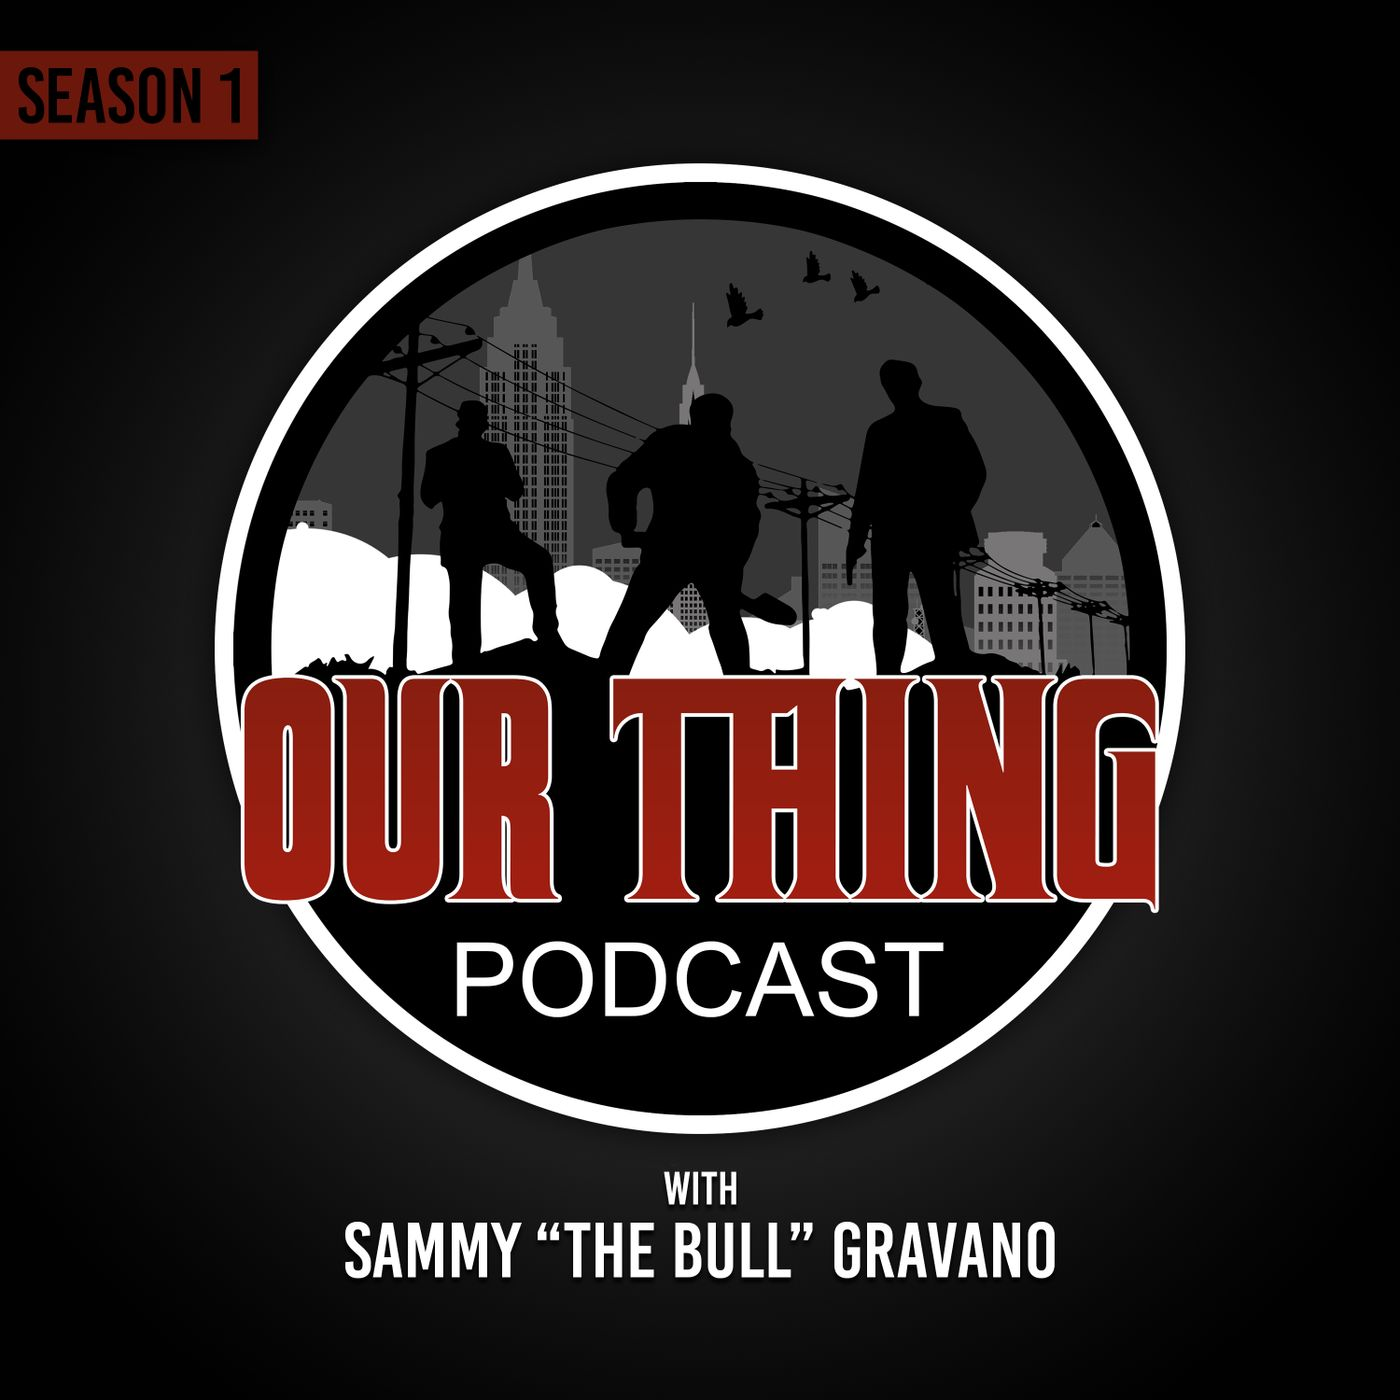 Our Thing with Sammy The Bull - S1 Episode 9: Would You Kill Paul?